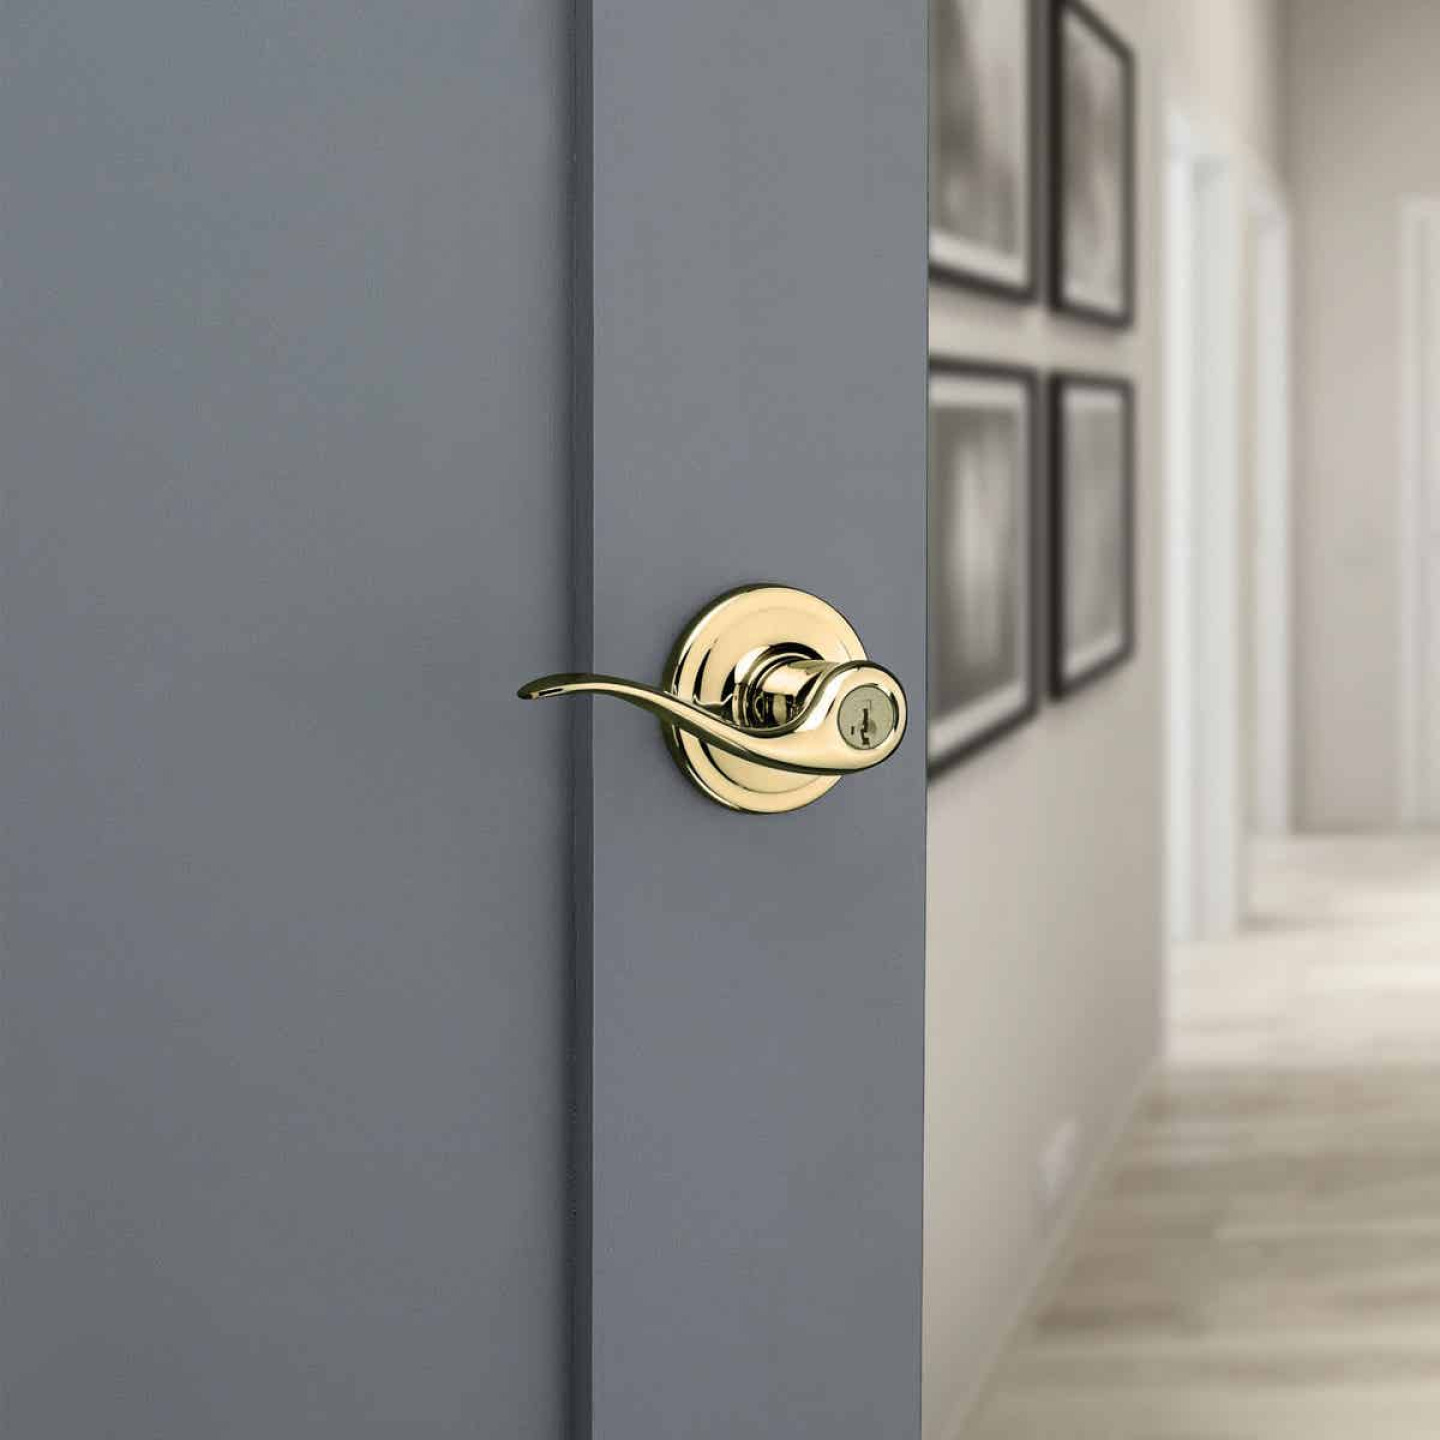 Kwikset Signature Series Polished Brass Tustin Entry Door Lever with Smartkey Image 2